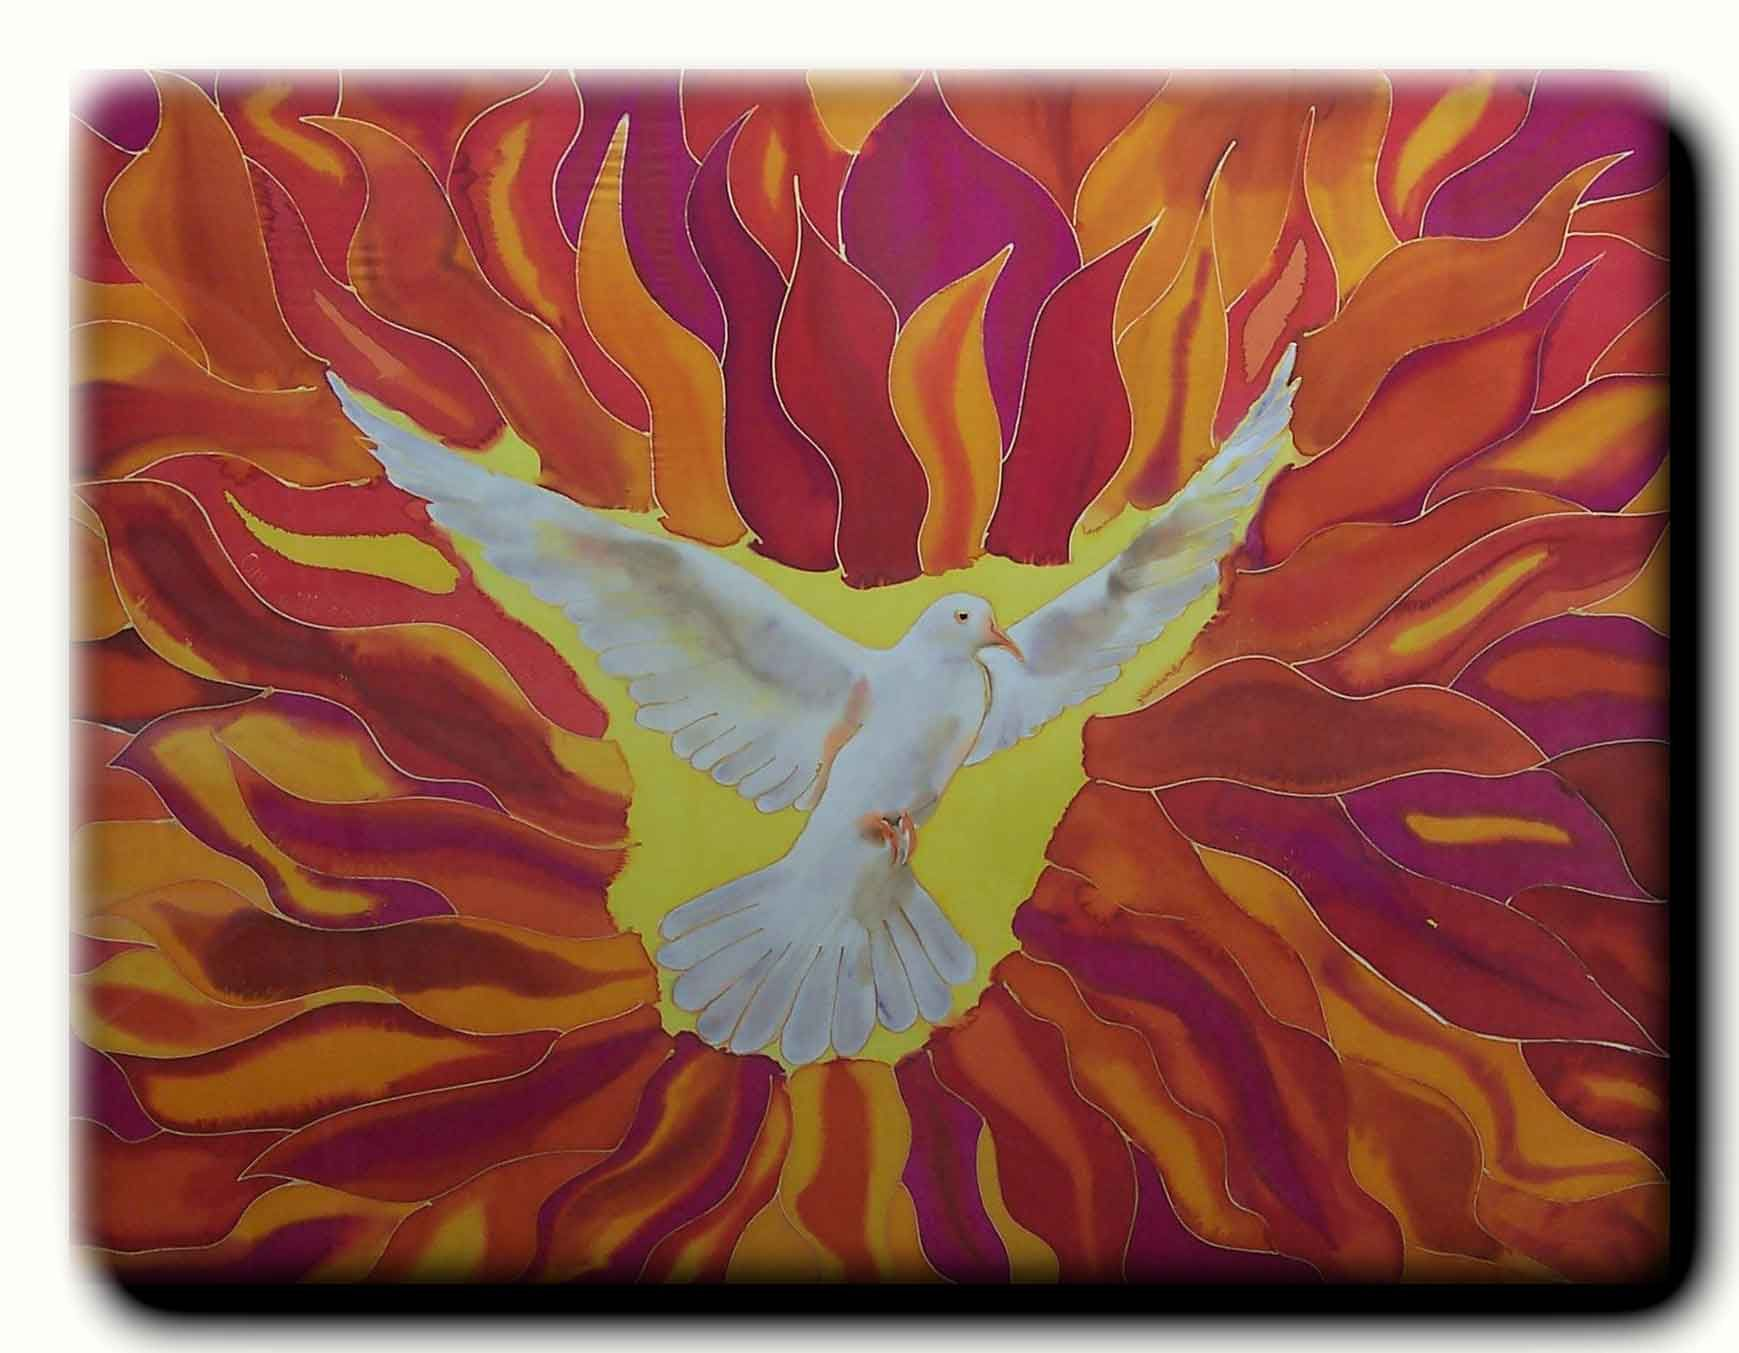 Download Pentecost Catholic Tongues Of Fire Pictures, Wallpapers